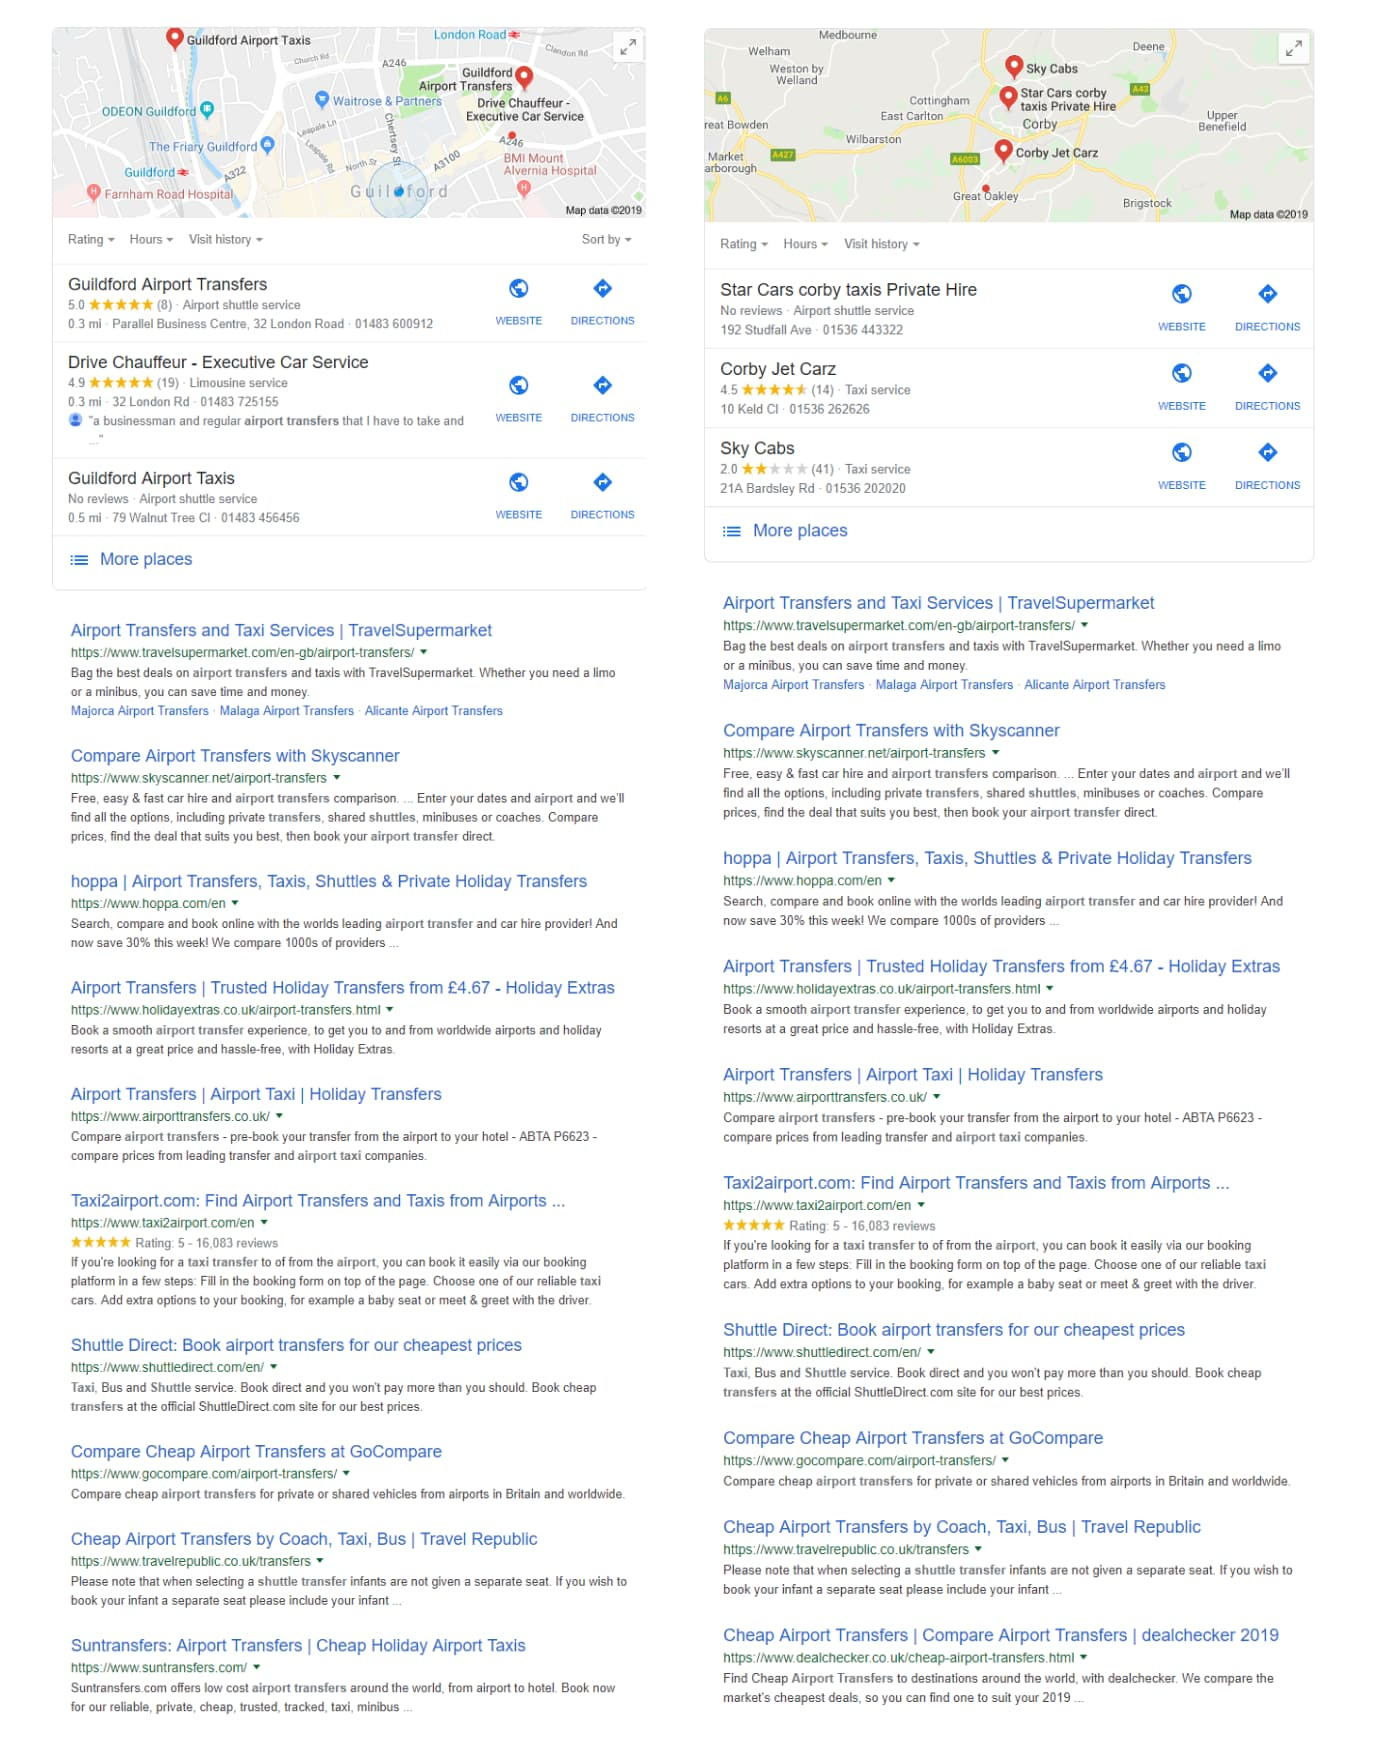 Same Search Results Regardless of Location - Online Ownership